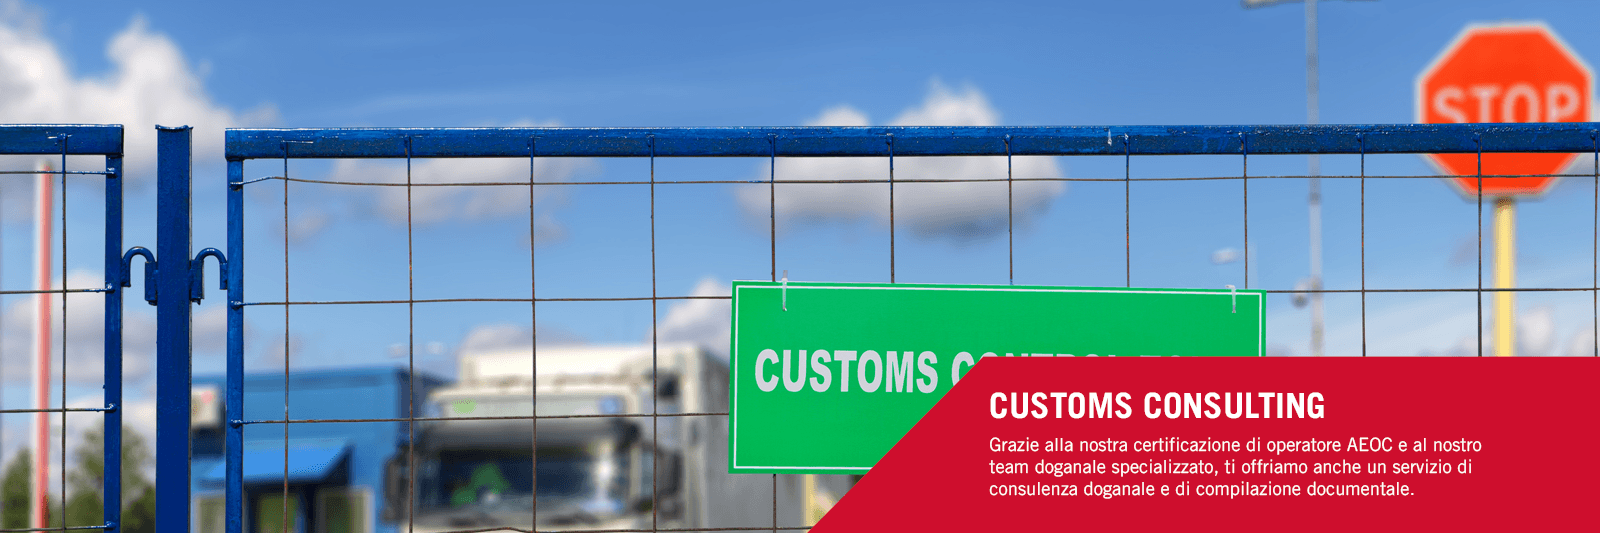 CUSTOMS_IT